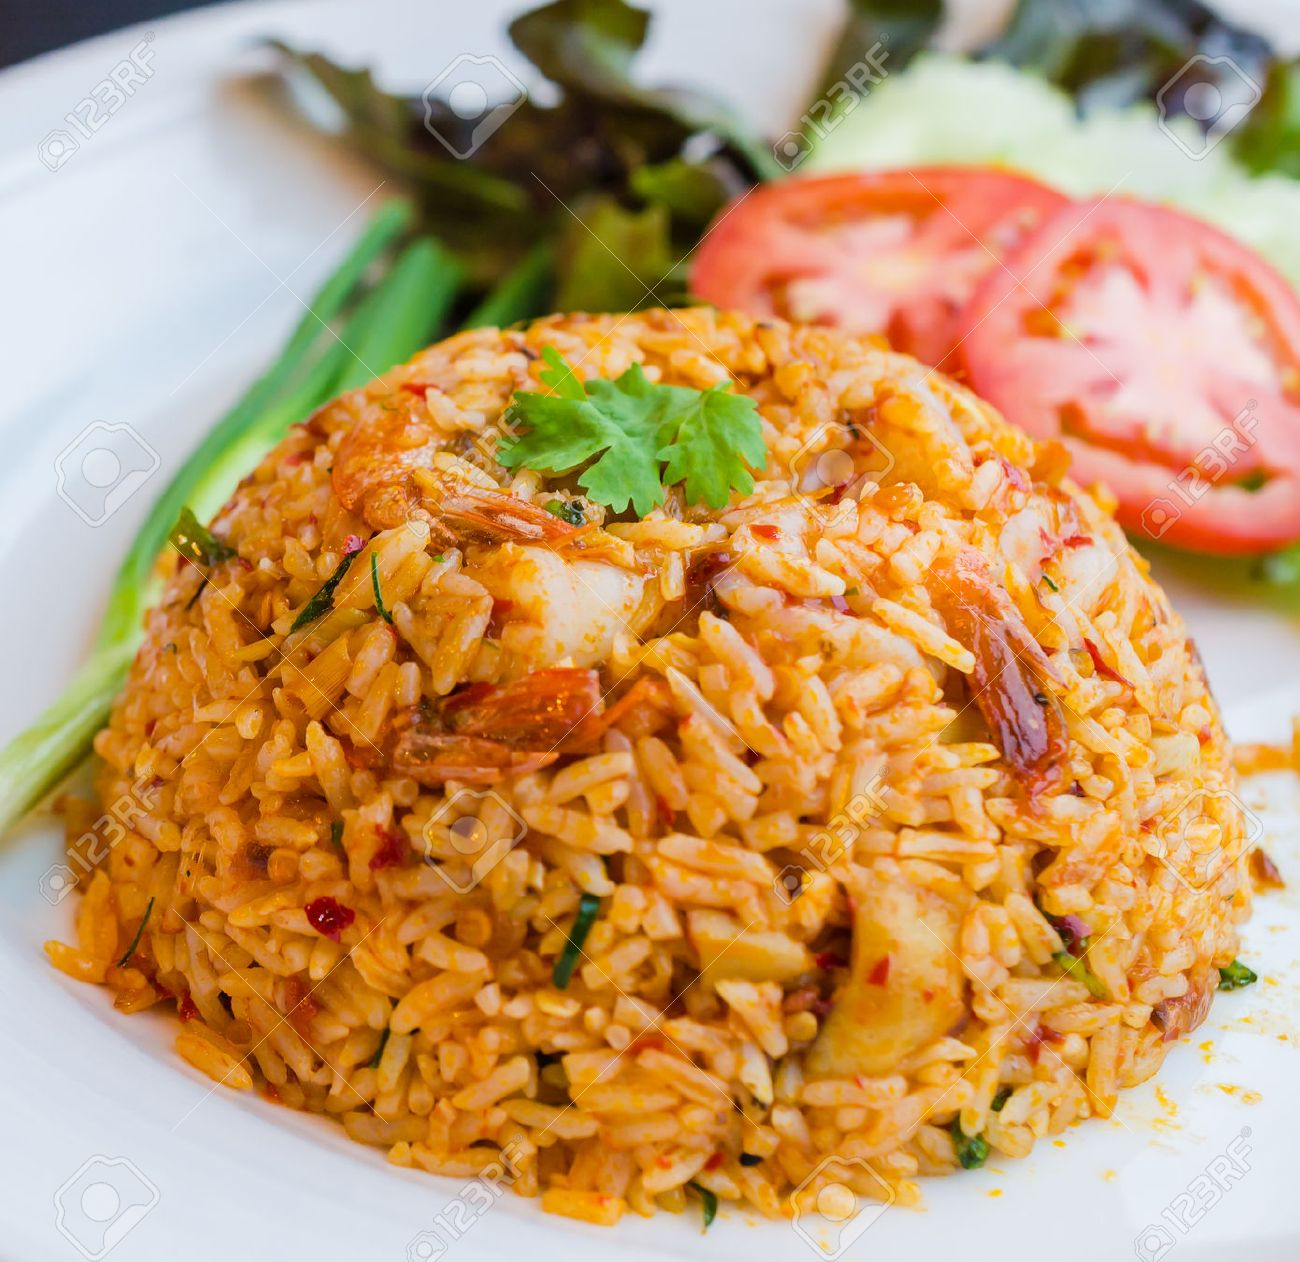 Spicy Fried rice Standard-Bild - 25268715